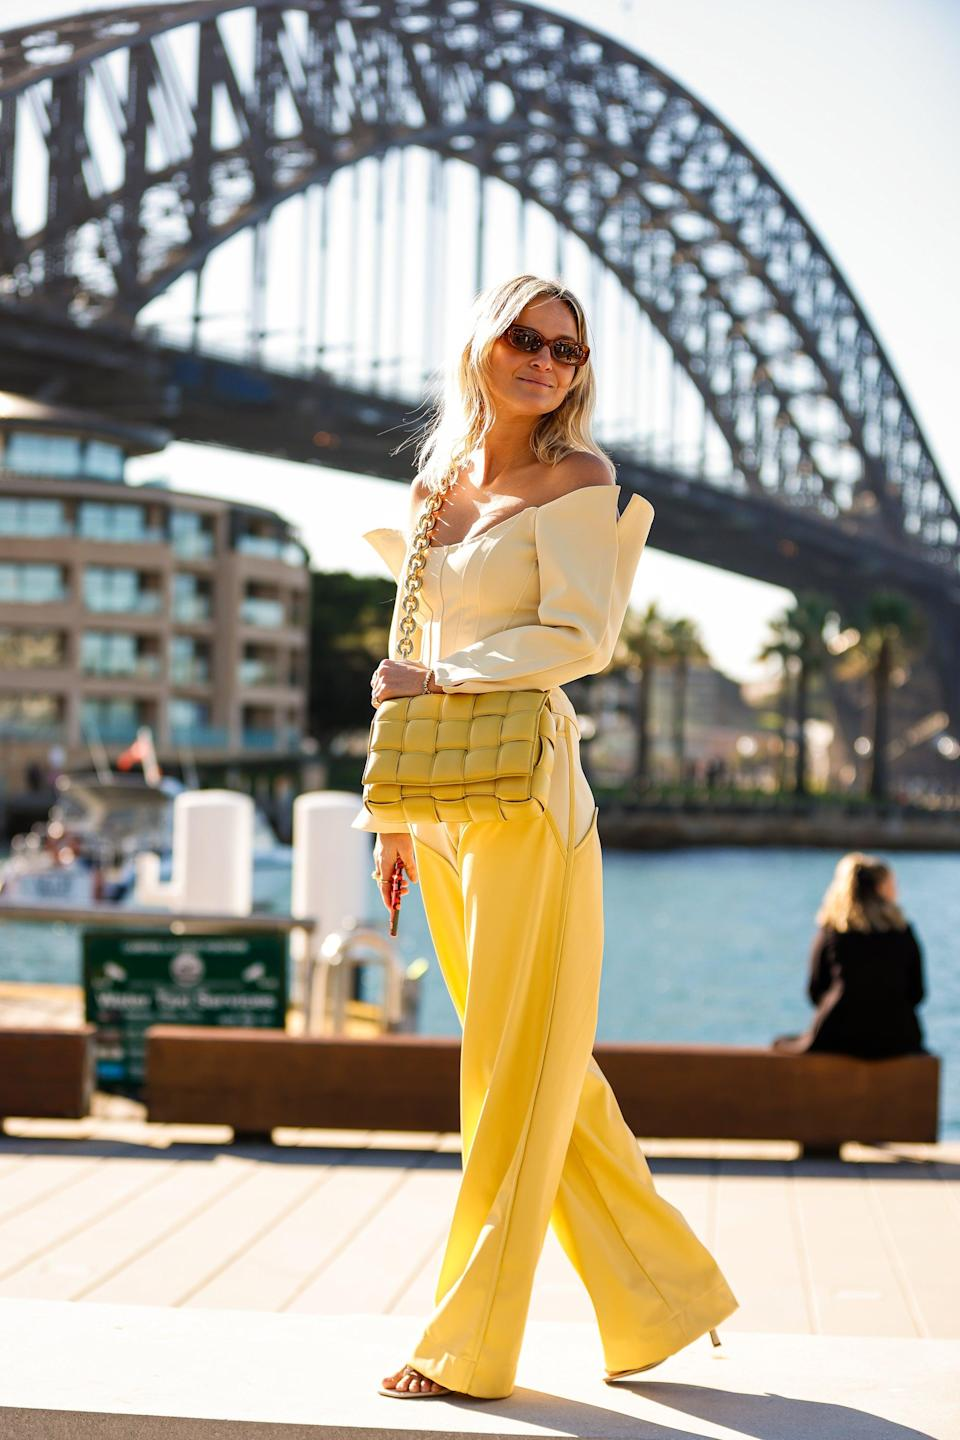 """<a href=""""https://repeller.com/the-best-winter-style-hack-involves-dressing-like-butter/"""" rel=""""nofollow noopener"""" target=""""_blank"""" data-ylk=""""slk:Stick-of-butter fashion"""" class=""""link rapid-noclick-resp"""">Stick-of-butter fashion</a> took the streets of Sydney by storm. <br><br><em><a href=""""https://www.instagram.com/nadiafairfax/?hl=en"""" rel=""""nofollow noopener"""" target=""""_blank"""" data-ylk=""""slk:Nadia Fairfax"""" class=""""link rapid-noclick-resp"""">Nadia Fairfax</a> wearing a <a href=""""https://shop.parisgeorgiastore.com/products/03-henry-top-daffy-cream?variant=39318430187714"""" rel=""""nofollow noopener"""" target=""""_blank"""" data-ylk=""""slk:Paris Georgia top"""" class=""""link rapid-noclick-resp"""">Paris Georgia top</a>, <a href=""""https://shop.parisgeorgiastore.com/products/03-oversized-cowboy-trousers?variant=39318954606786"""" rel=""""nofollow noopener"""" target=""""_blank"""" data-ylk=""""slk:Paris Georgia pants"""" class=""""link rapid-noclick-resp"""">Paris Georgia pants</a>, a <a href=""""https://www.fwrd.com/product-bottega-veneta-the-chain-cassette-in-butter-gold/BOTT-WY464/"""" rel=""""nofollow noopener"""" target=""""_blank"""" data-ylk=""""slk:Bottega Veneta bag,"""" class=""""link rapid-noclick-resp"""">Bottega Veneta bag,</a> and <a href=""""https://www.banbeeyewear.com/collections/new-arrivals/products/the-bella-honey-tort-brown"""" rel=""""nofollow noopener"""" target=""""_blank"""" data-ylk=""""slk:Banbé sunglasses"""" class=""""link rapid-noclick-resp"""">Banbé sunglasses</a>. </em><span class=""""copyright"""">Photo: Hanna Lassen/Getty Images.</span>"""